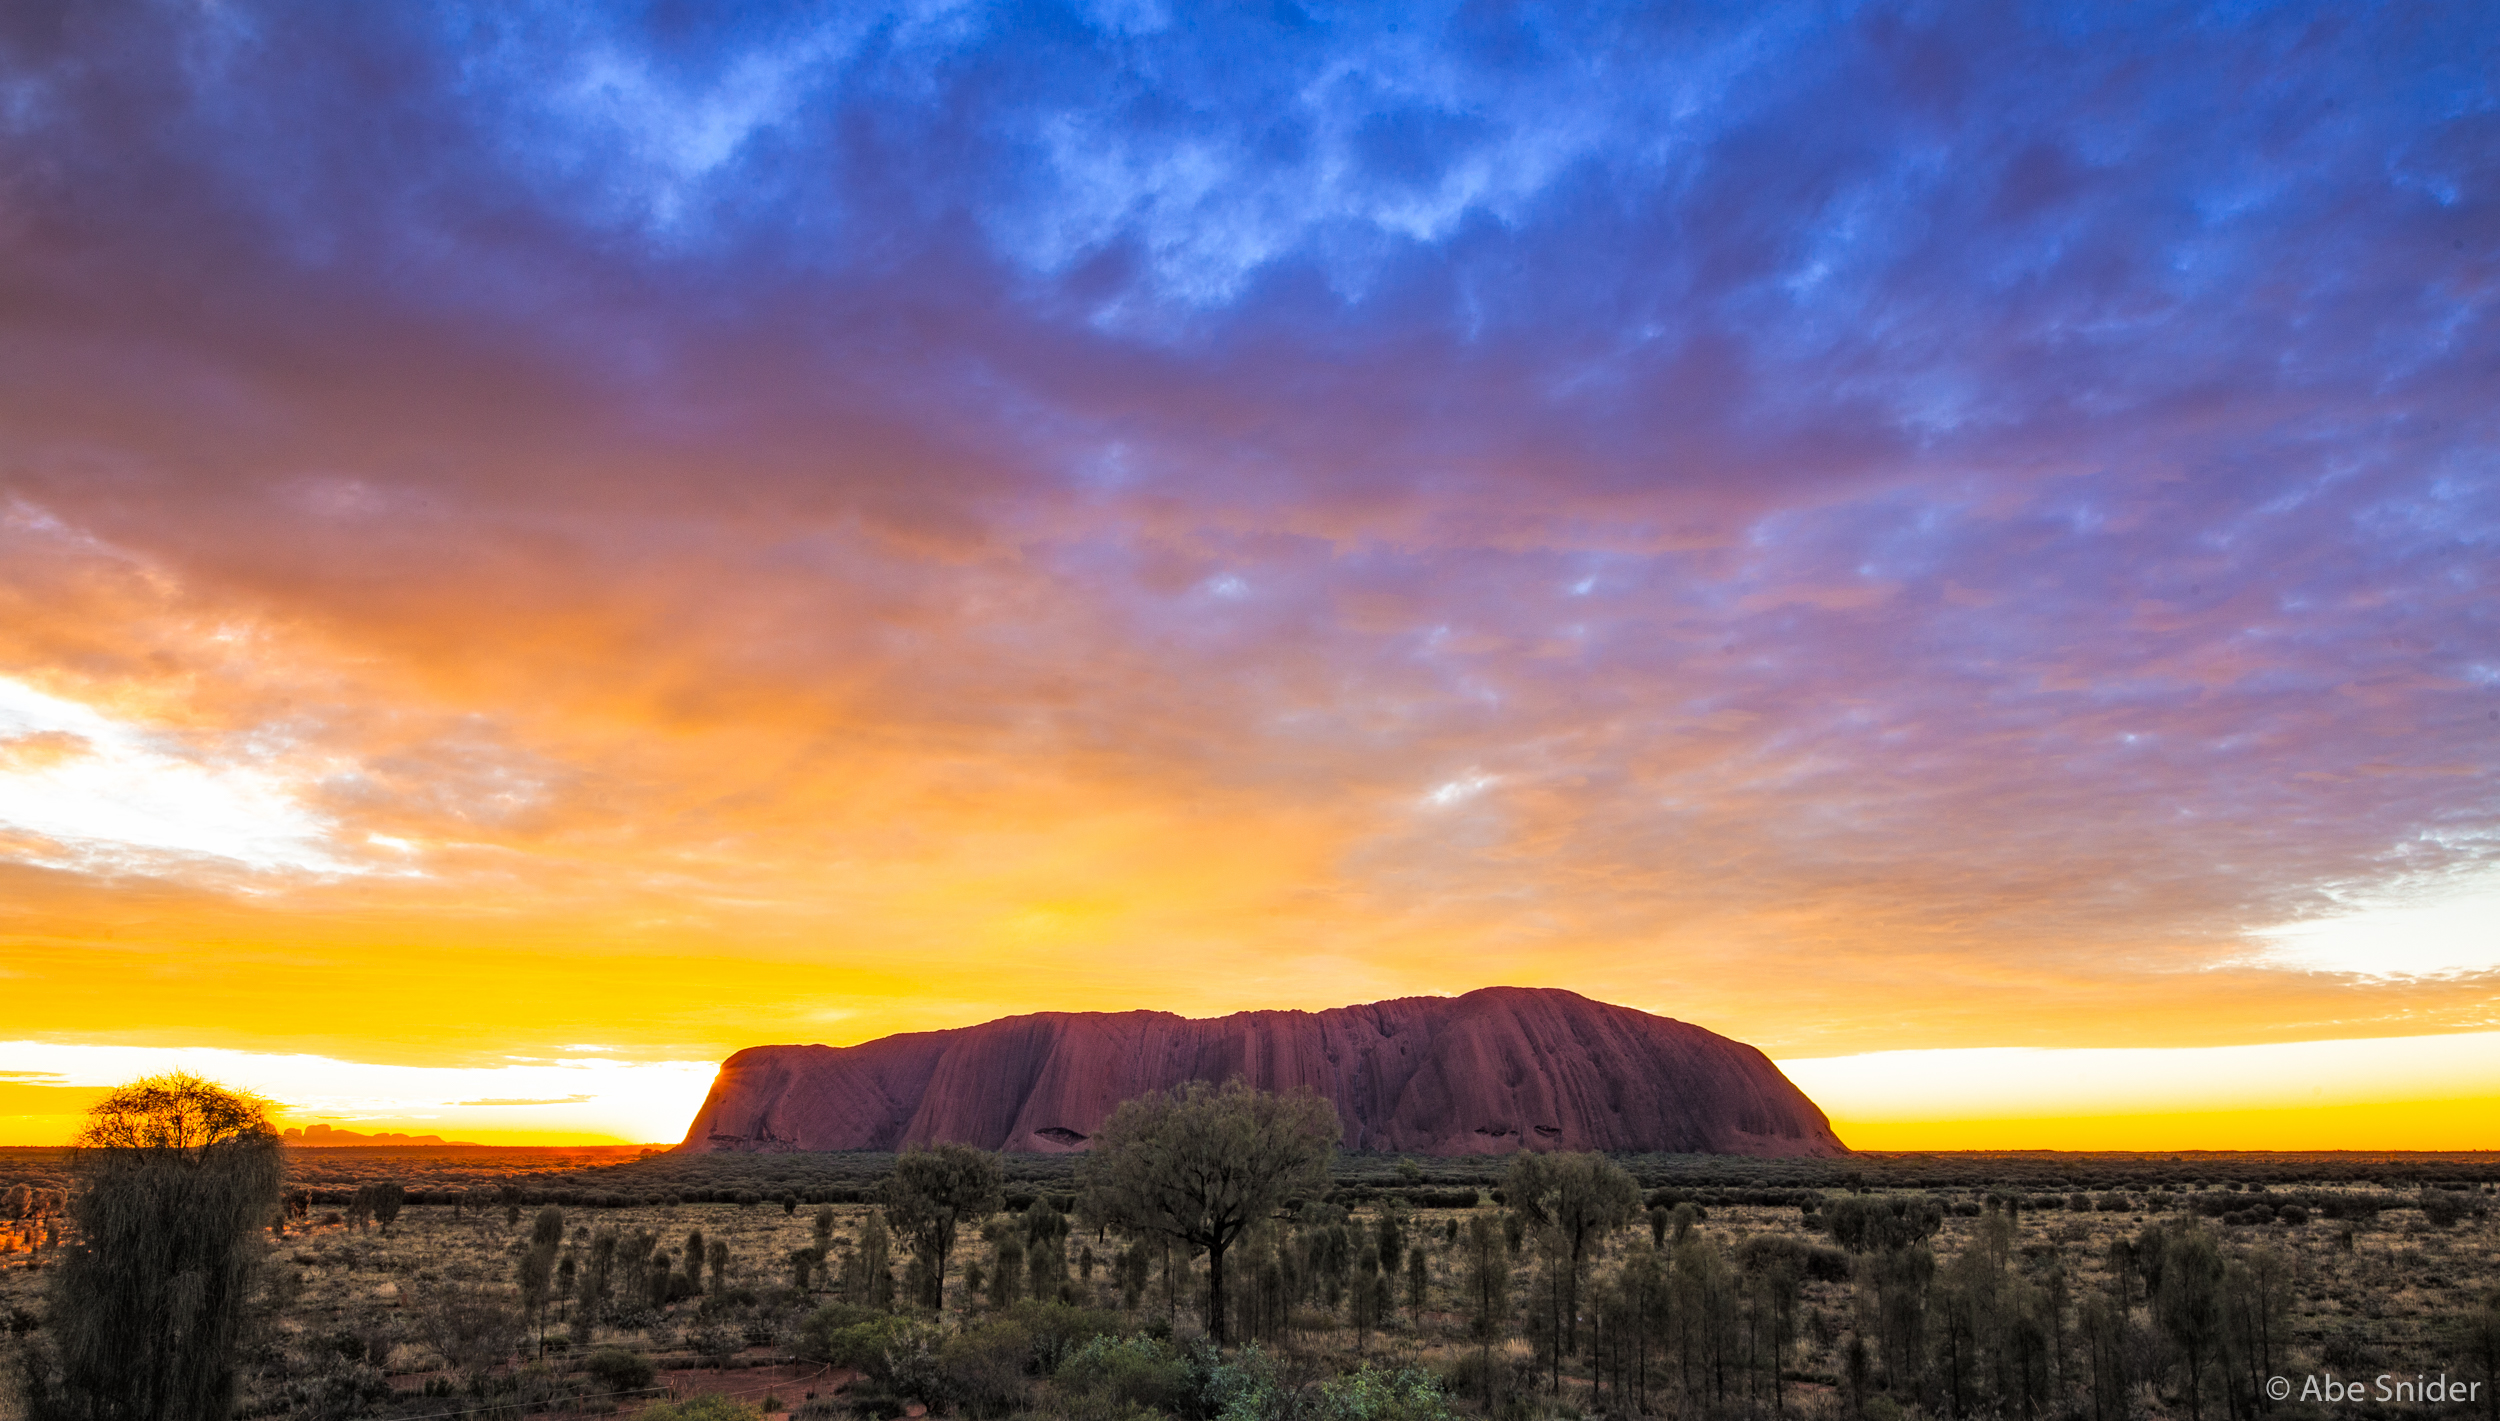 One of the last sunsets we enjoyed at Uluru, and one I will never forget.